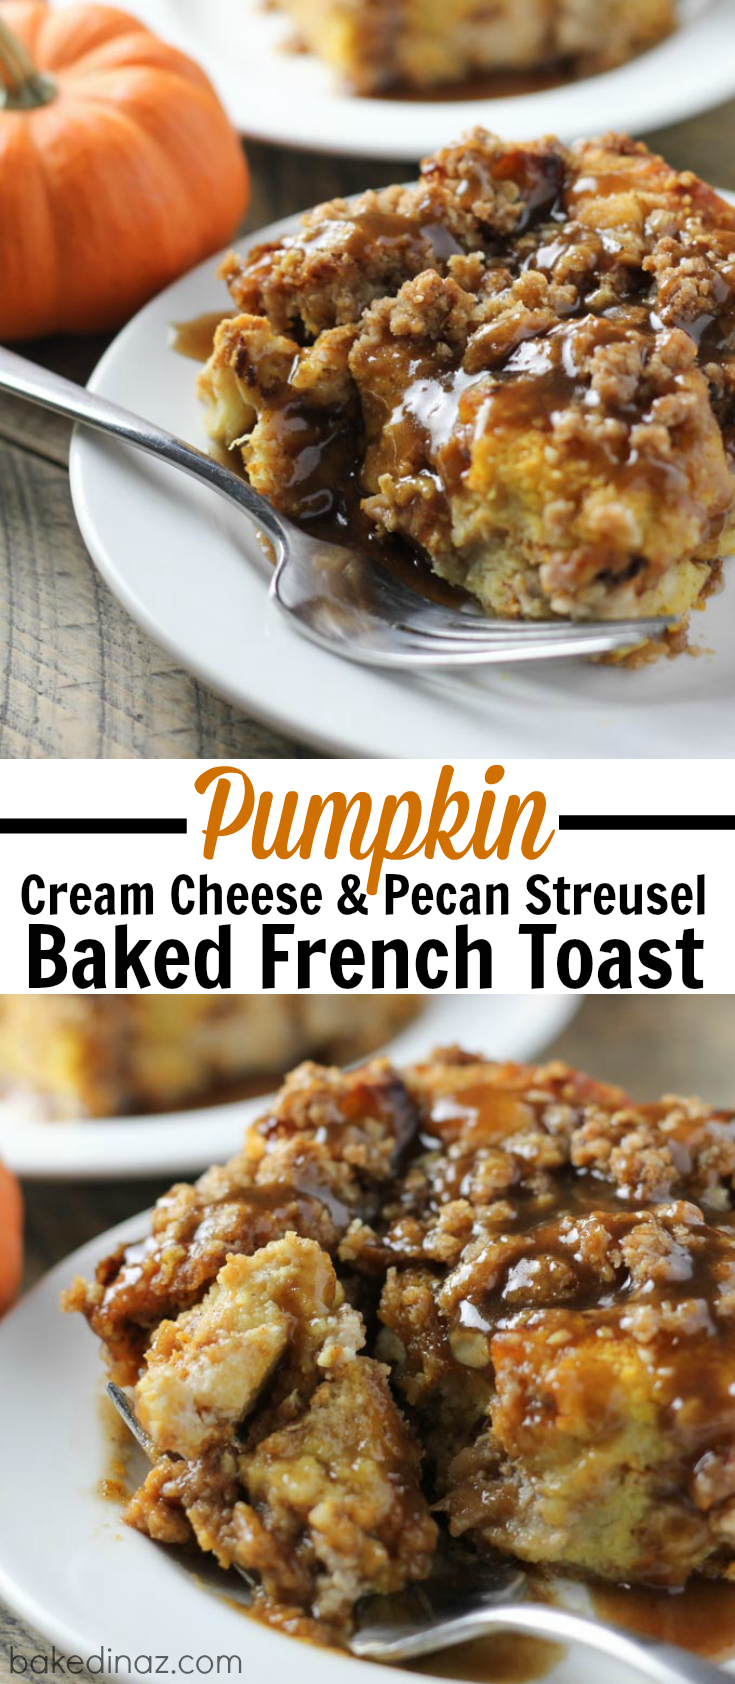 Overnight Pumpkin Cream Cheese French Toast